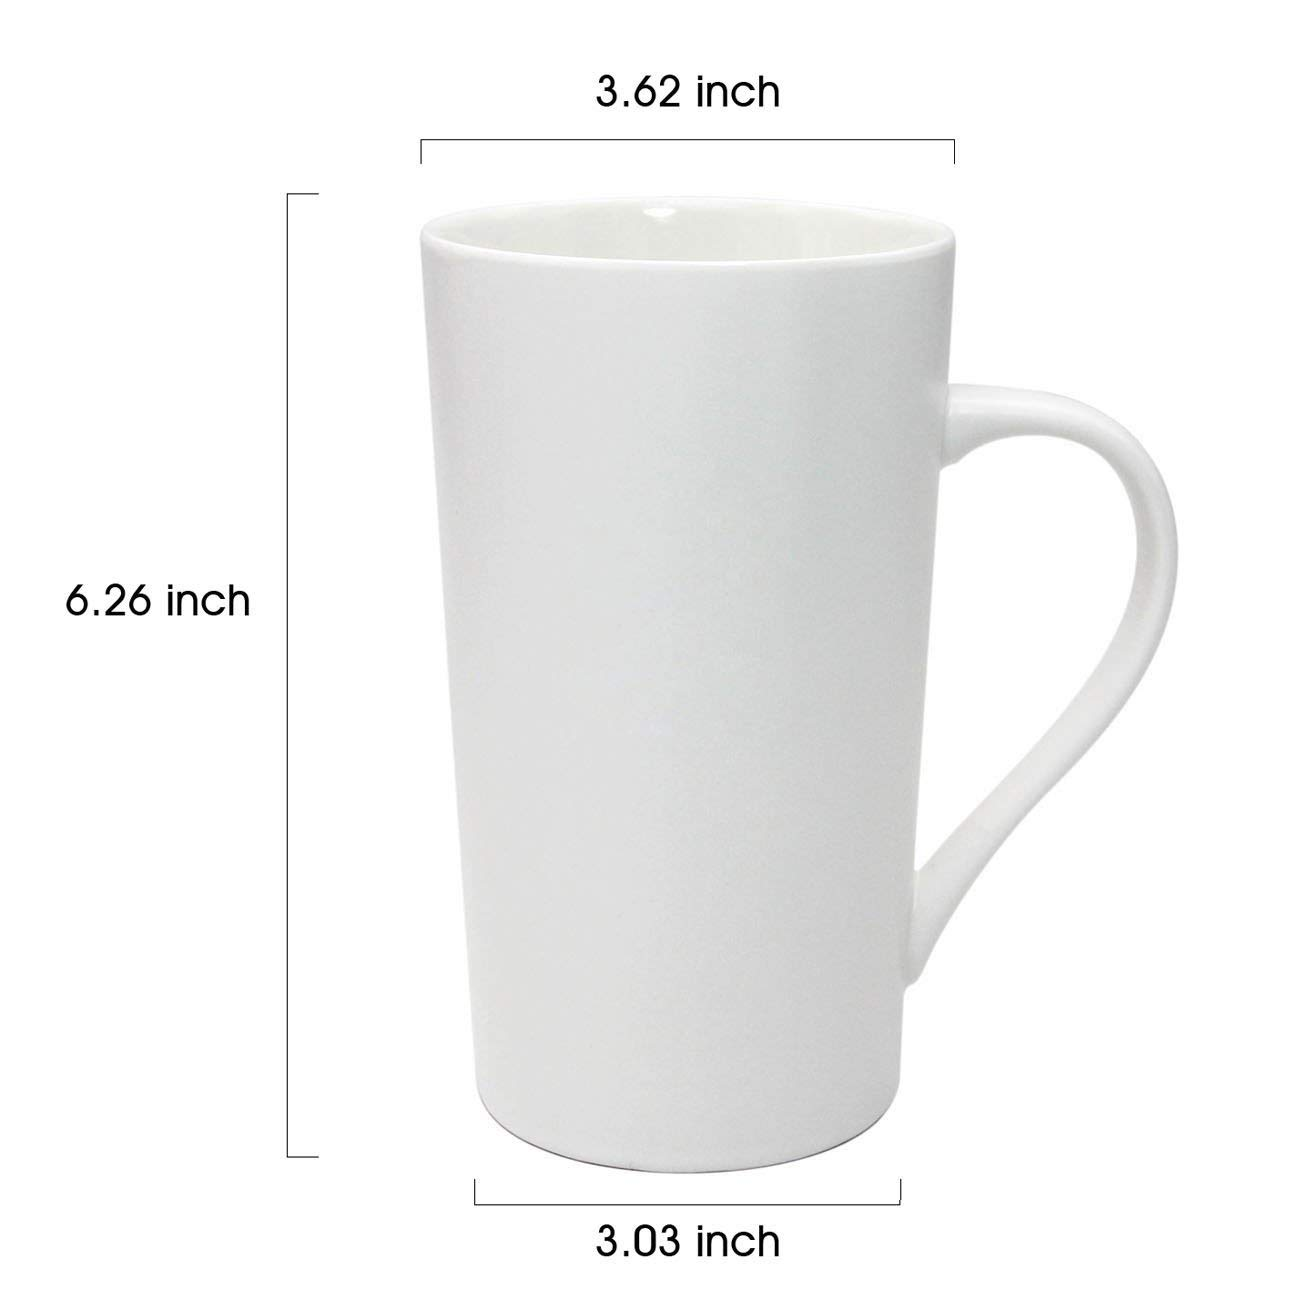 Large 20 oz Ceramic Coffee Mug,Set of 2 Durable Hot Cocoa & Tea Mug,White 6